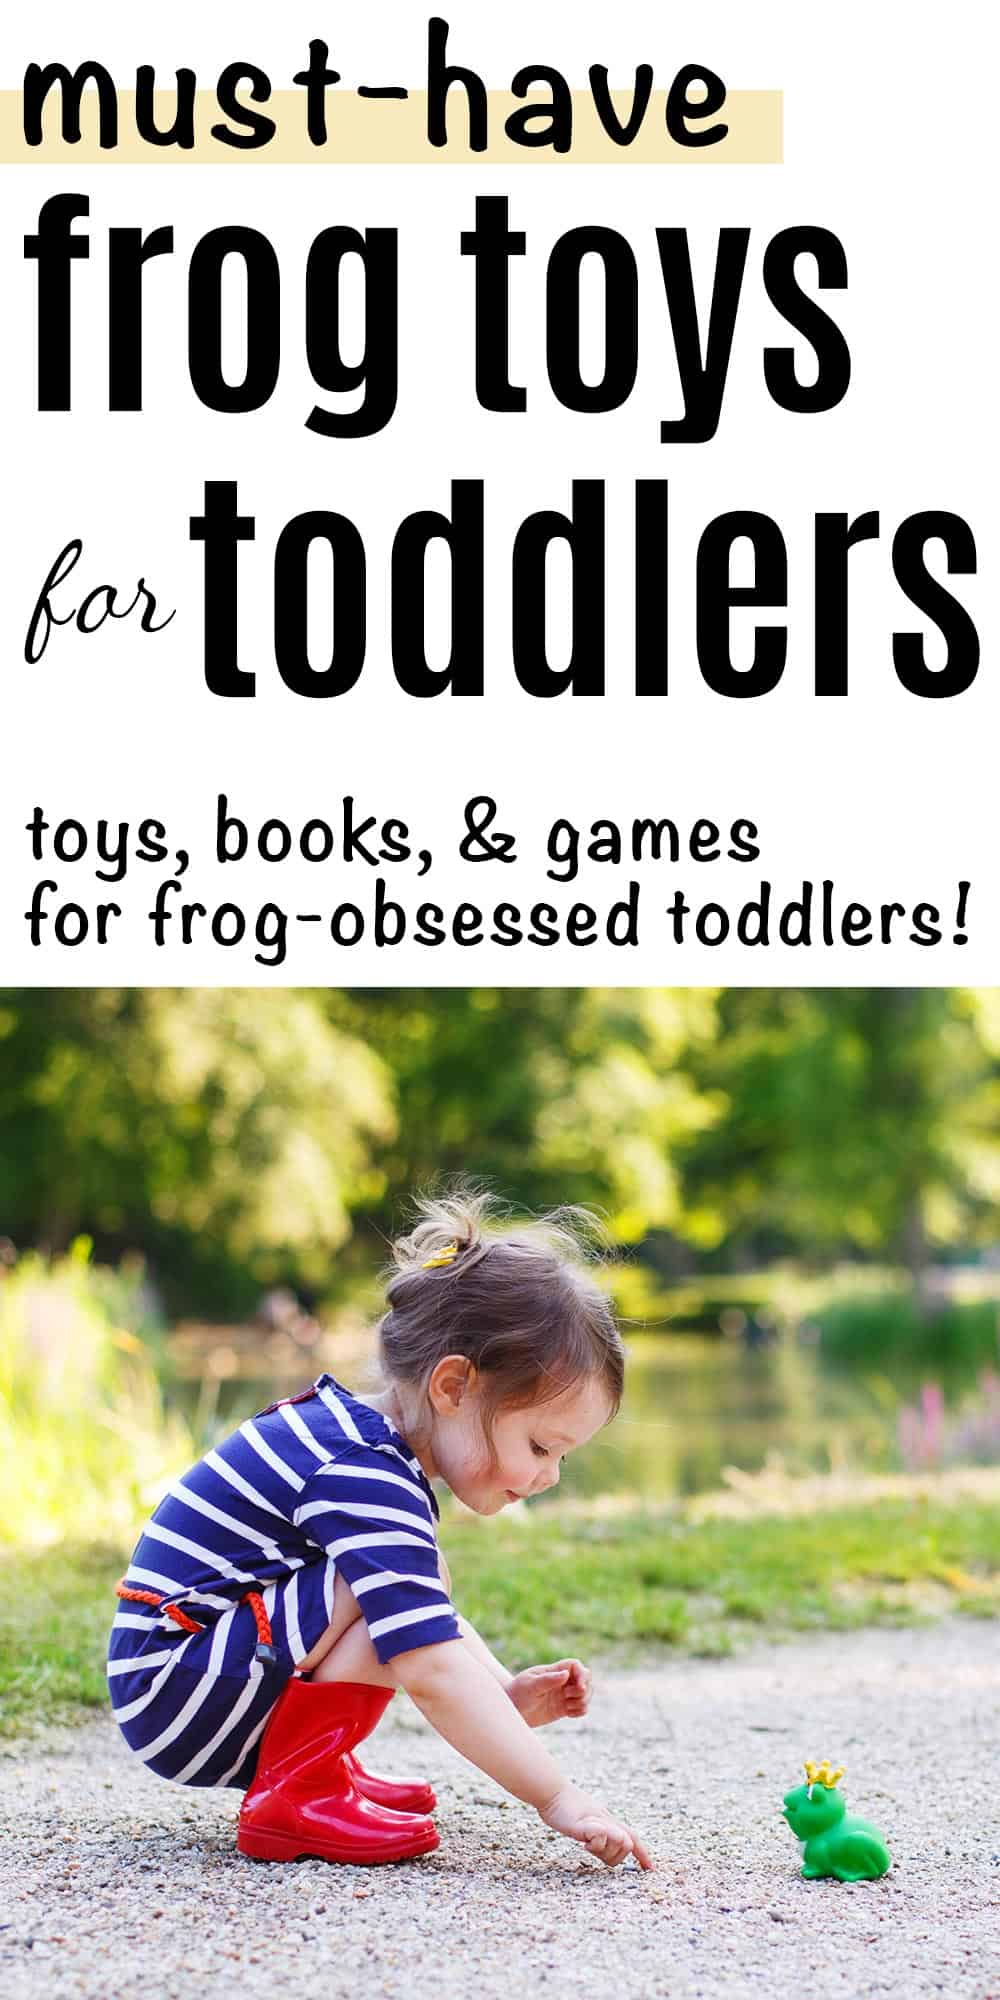 must-have frog toys for toddlers